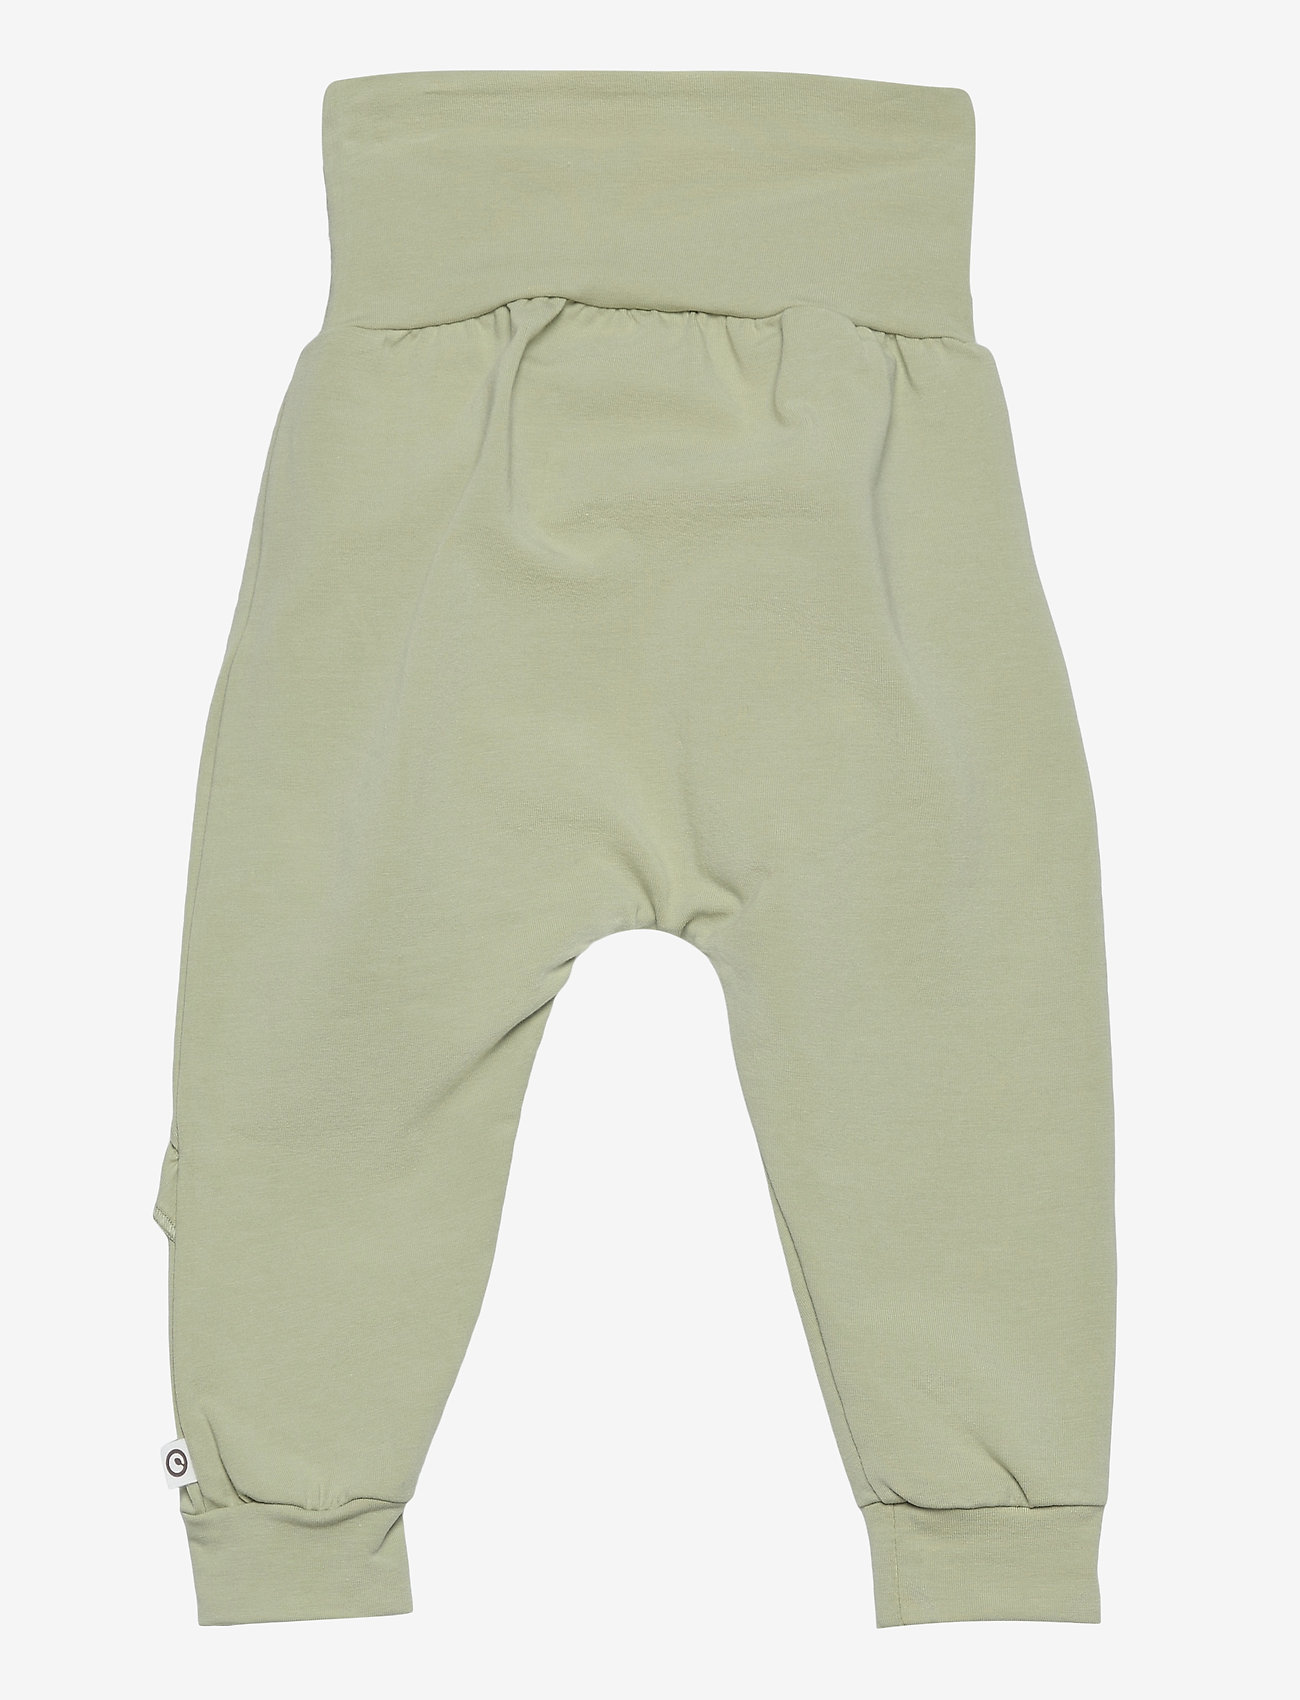 Müsli by Green Cotton - Cozy me frill pants - trousers - pale moss - 1